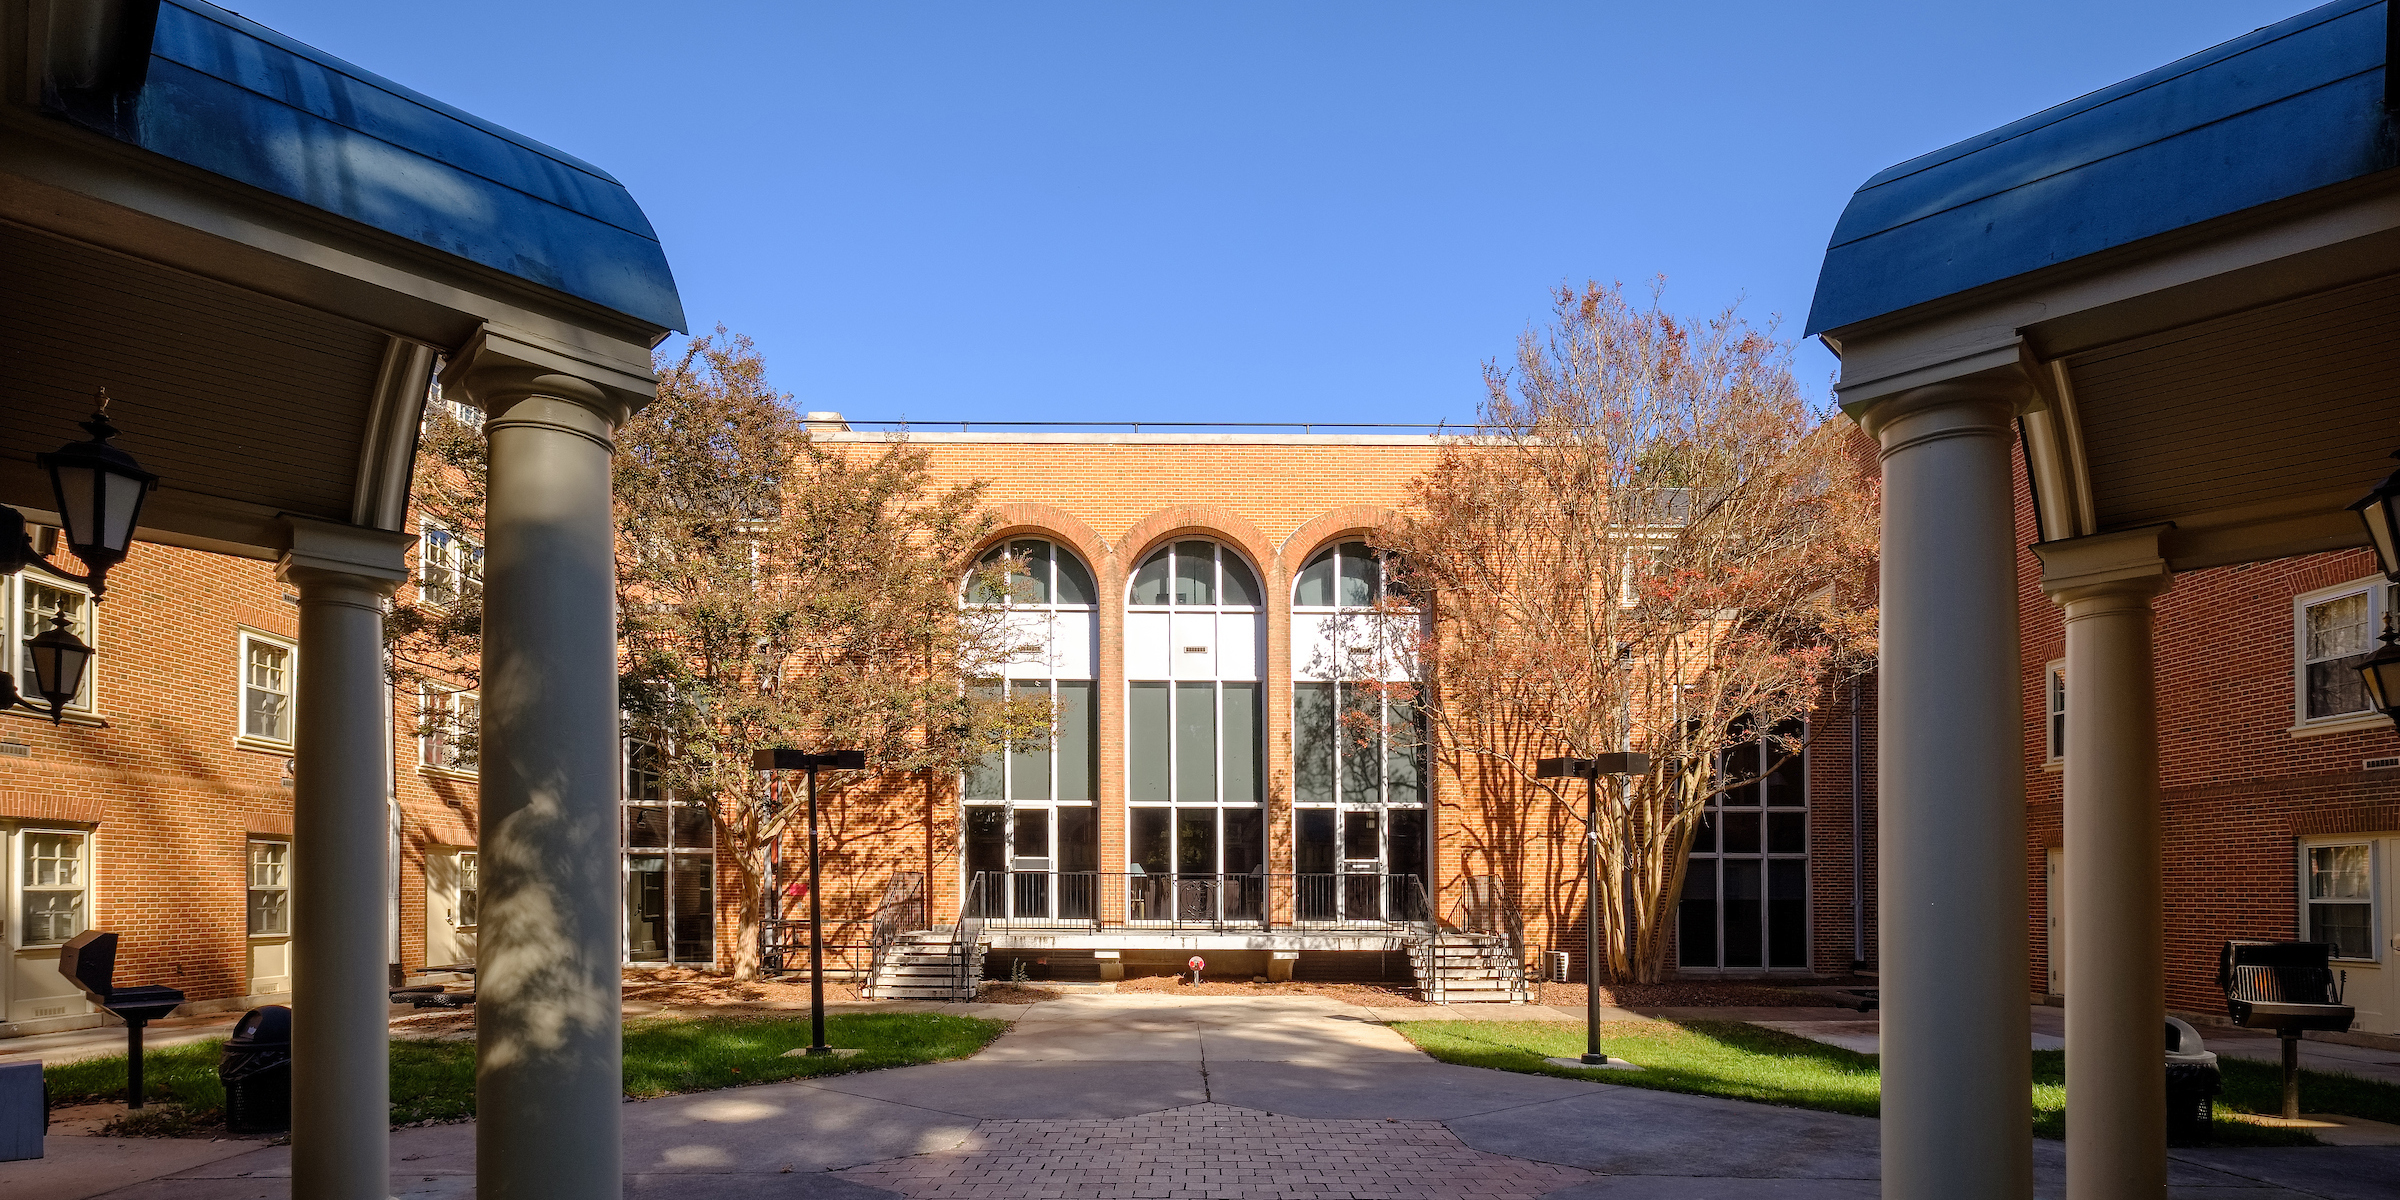 Rear courtyard of Luter residence hall